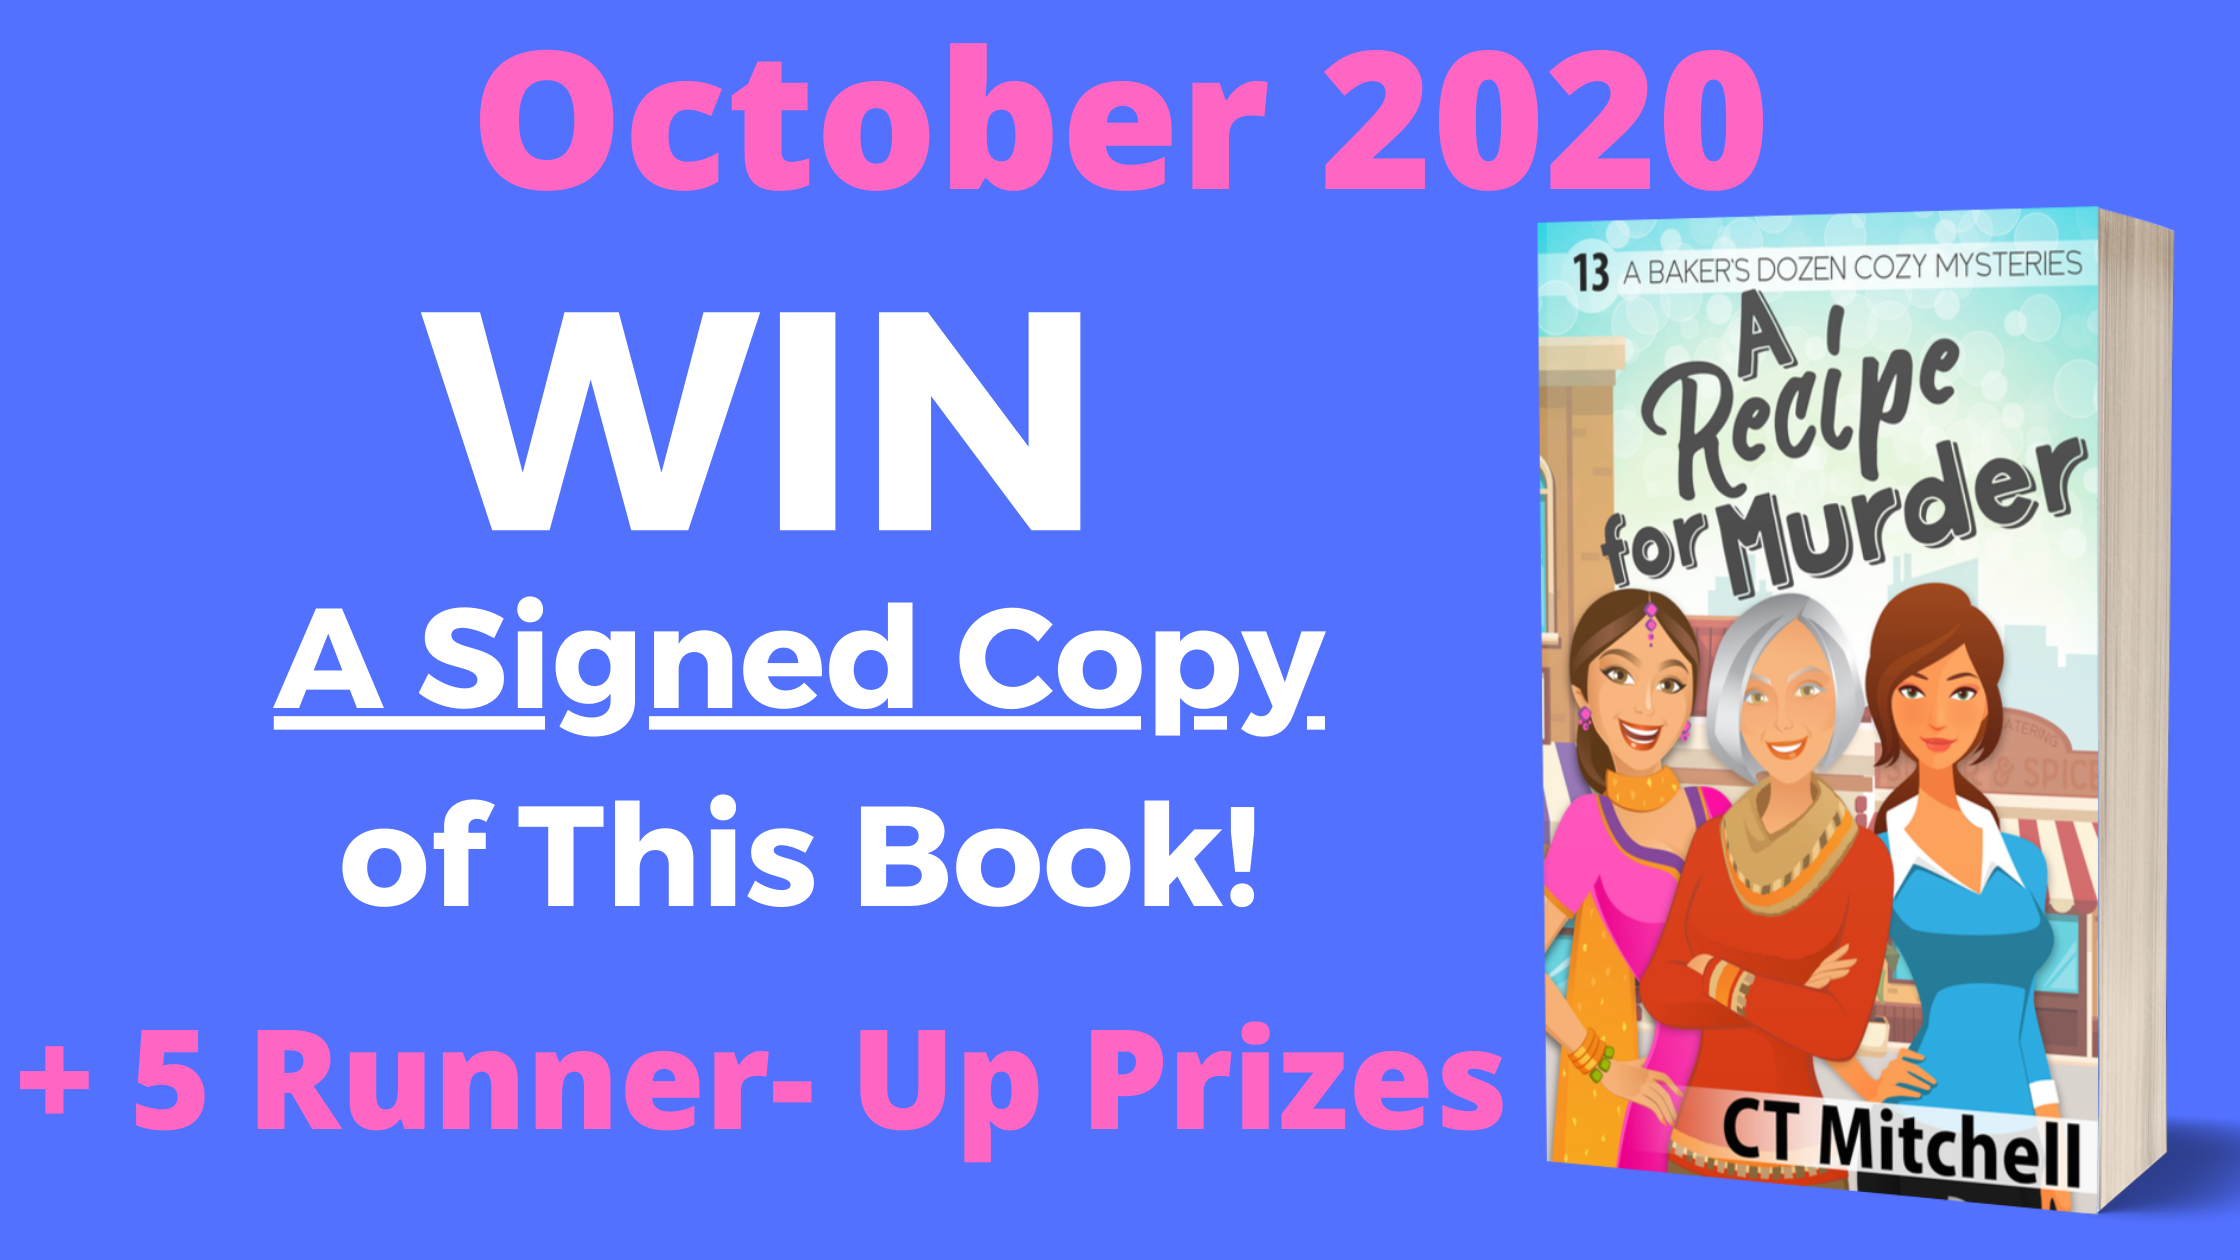 October 2020 Contest - Free Book Giveaways